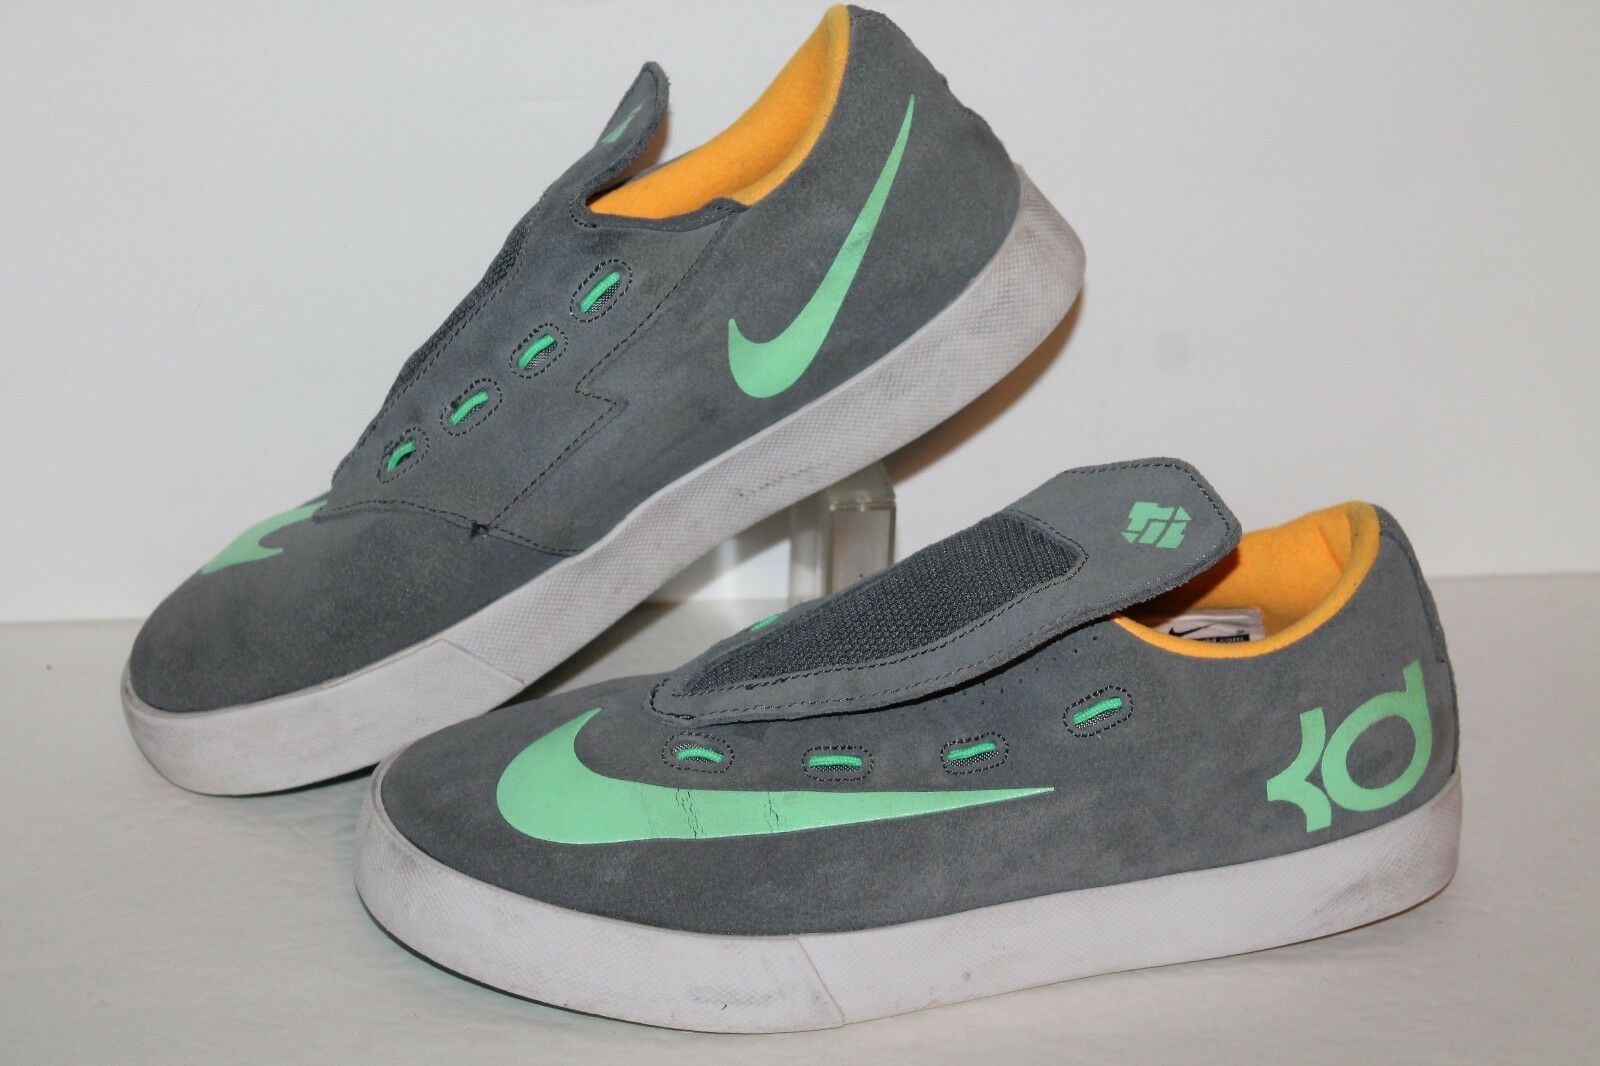 NIke KD Vulc Casual Sneakers, Grey/Sea Green, Men's 5.5 / 5.5 Youth  The latest discount shoes for men and women